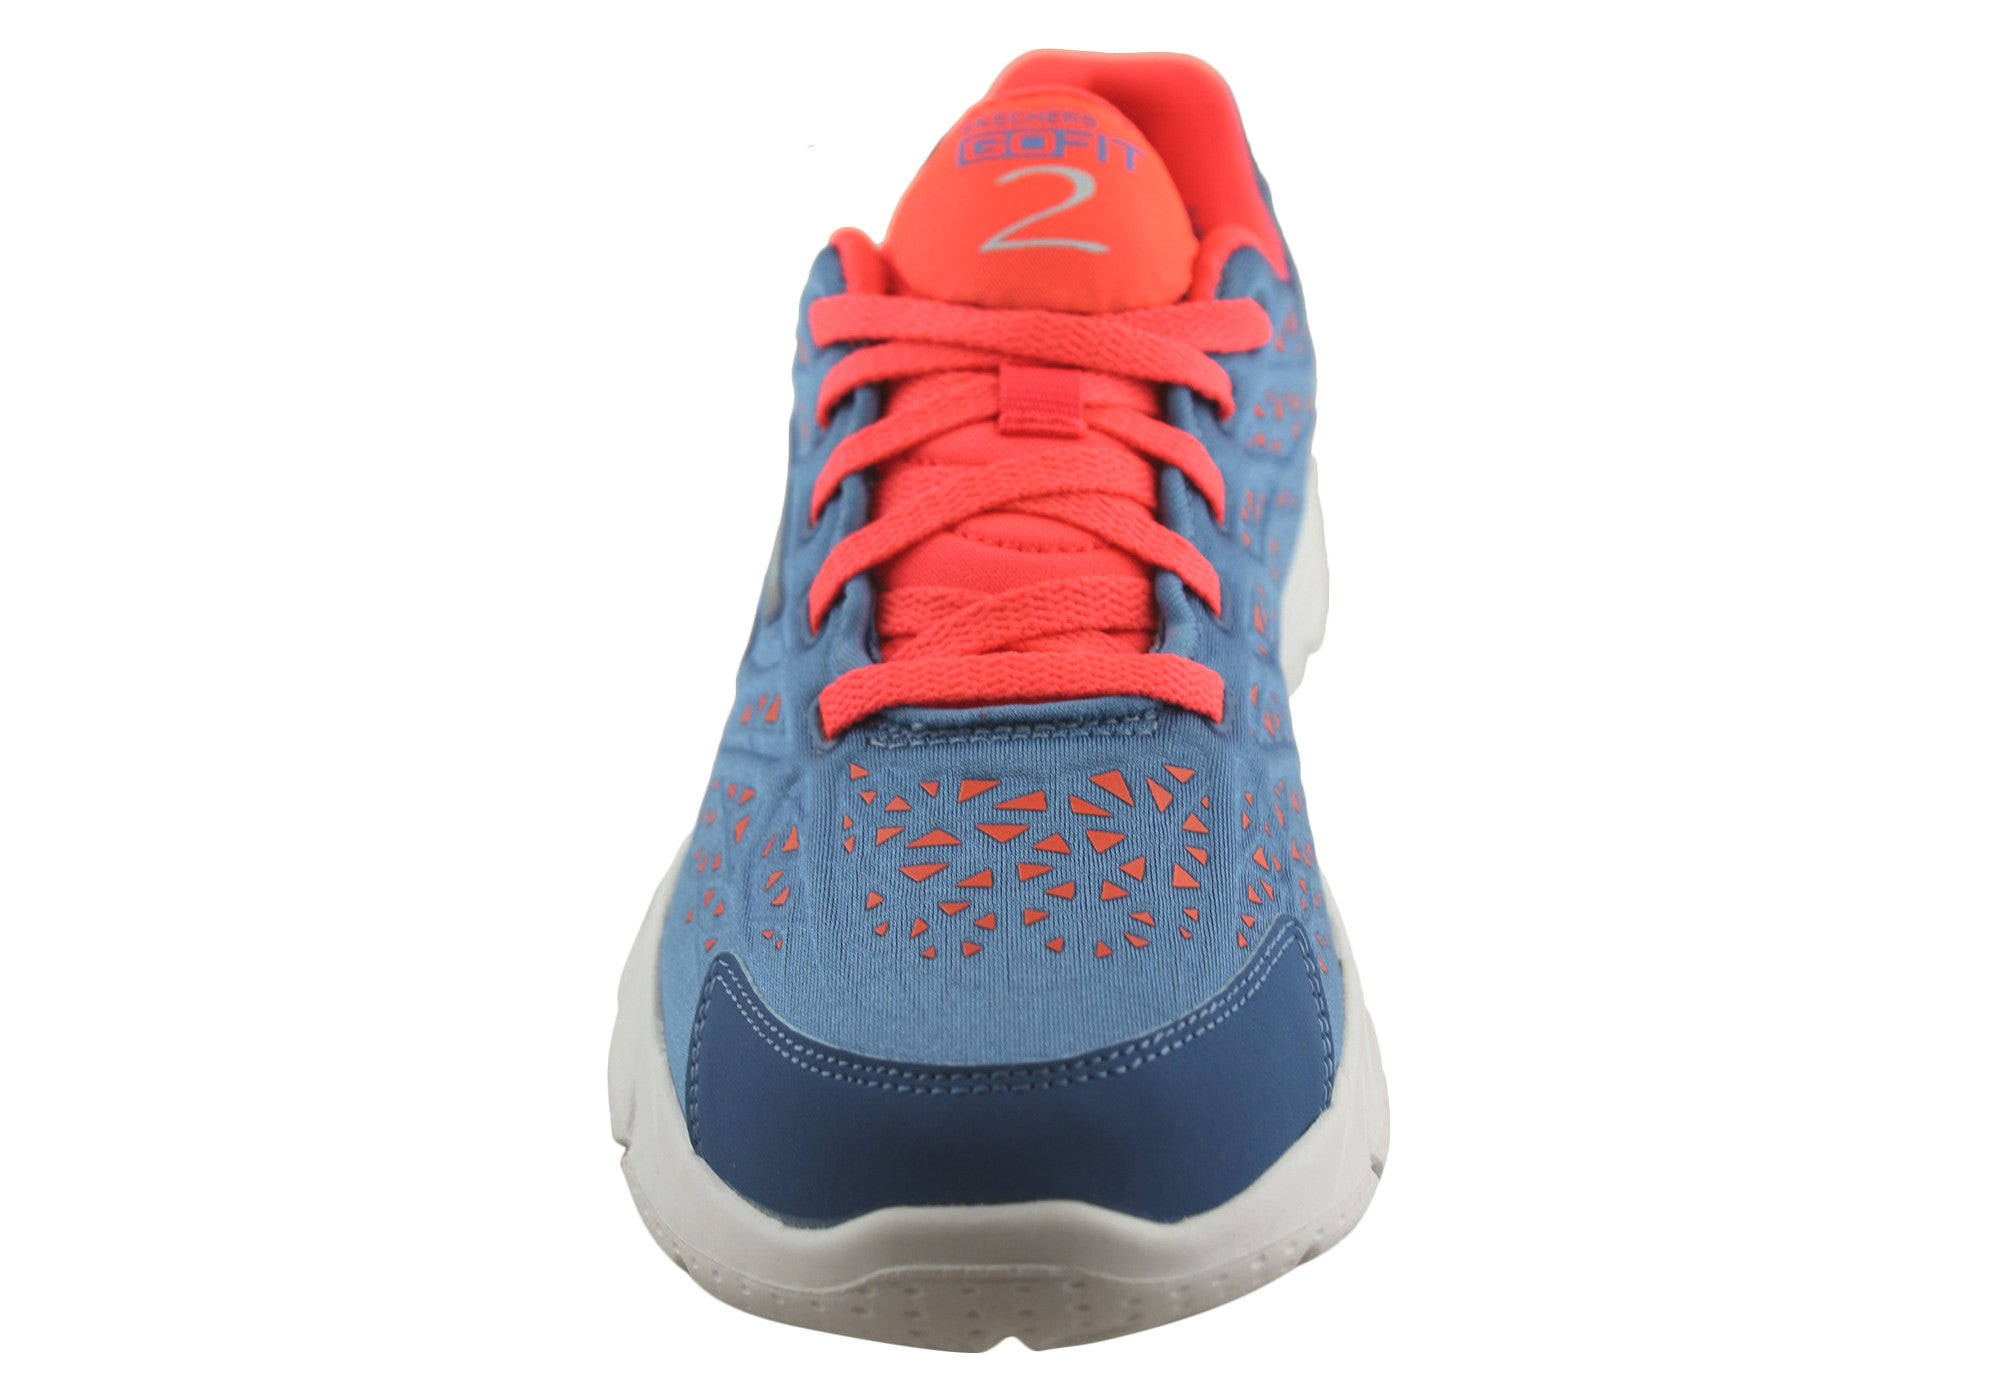 Skechers Go Fit 2 Presto Womens Sneakers with Gogo Mat